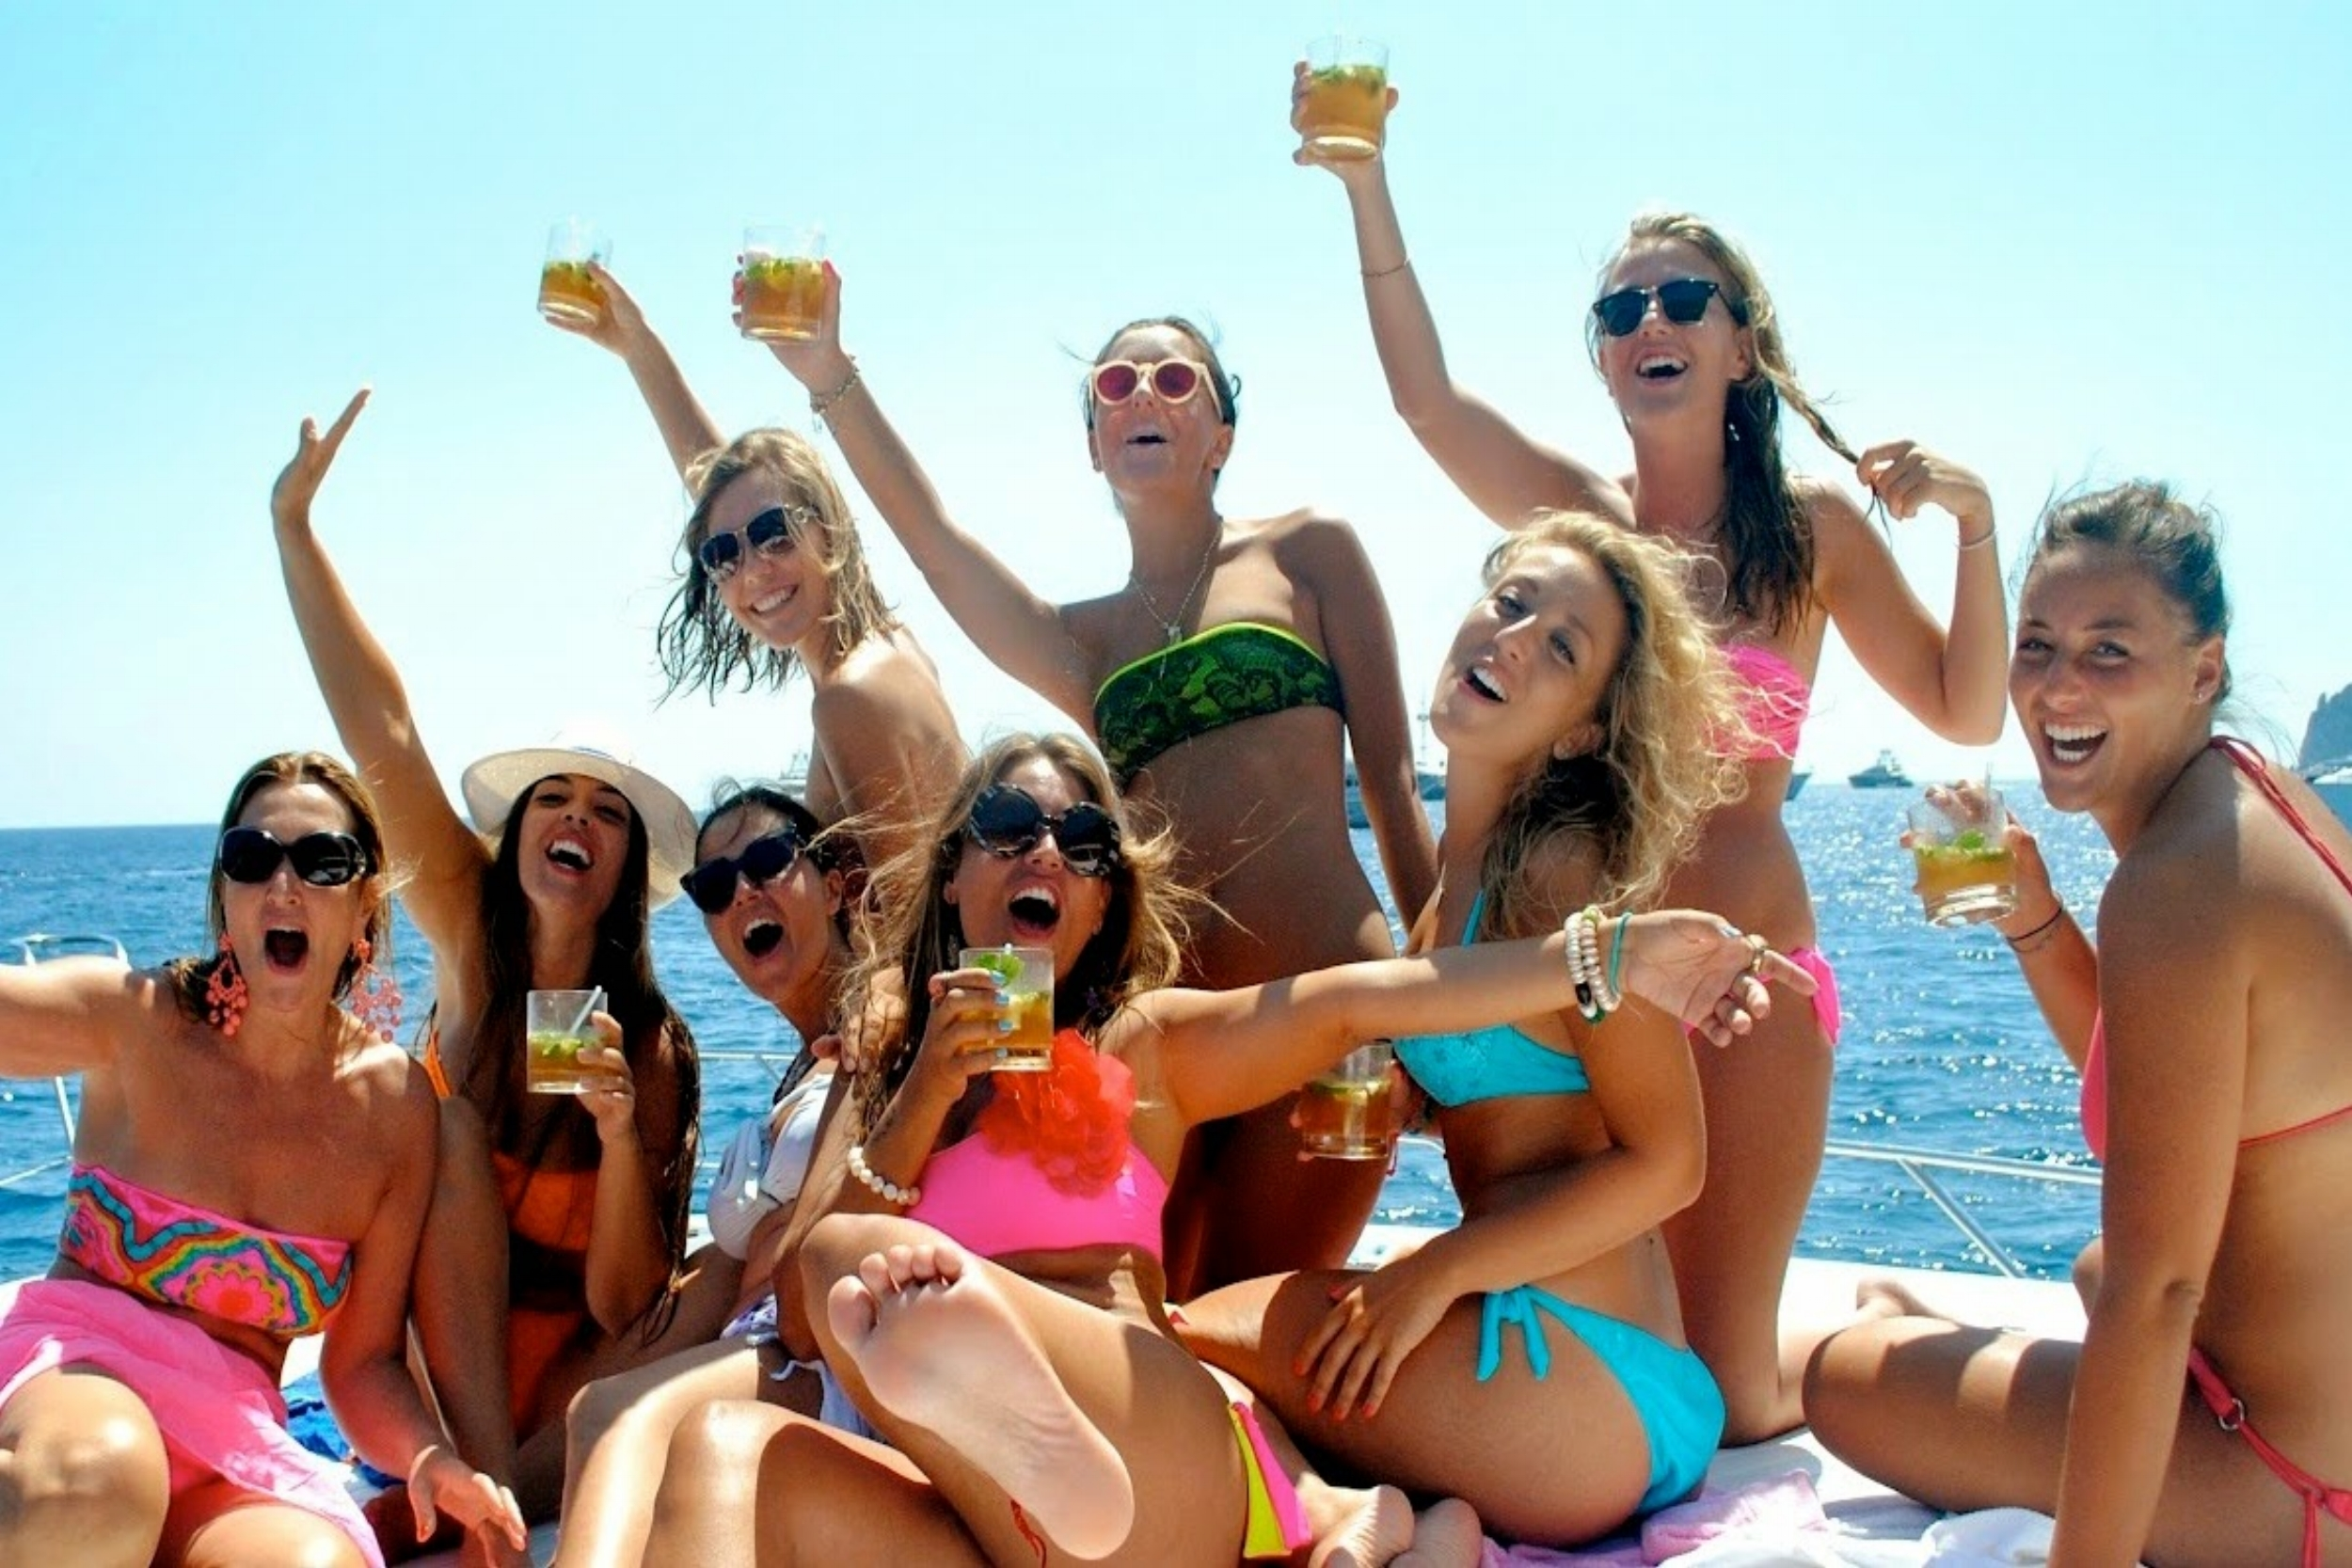 Stag Party - Come enjoy an unforgettable time at sea! With a DJ on board and a lot of other options.From 3 to 6 hoursMax 14 People